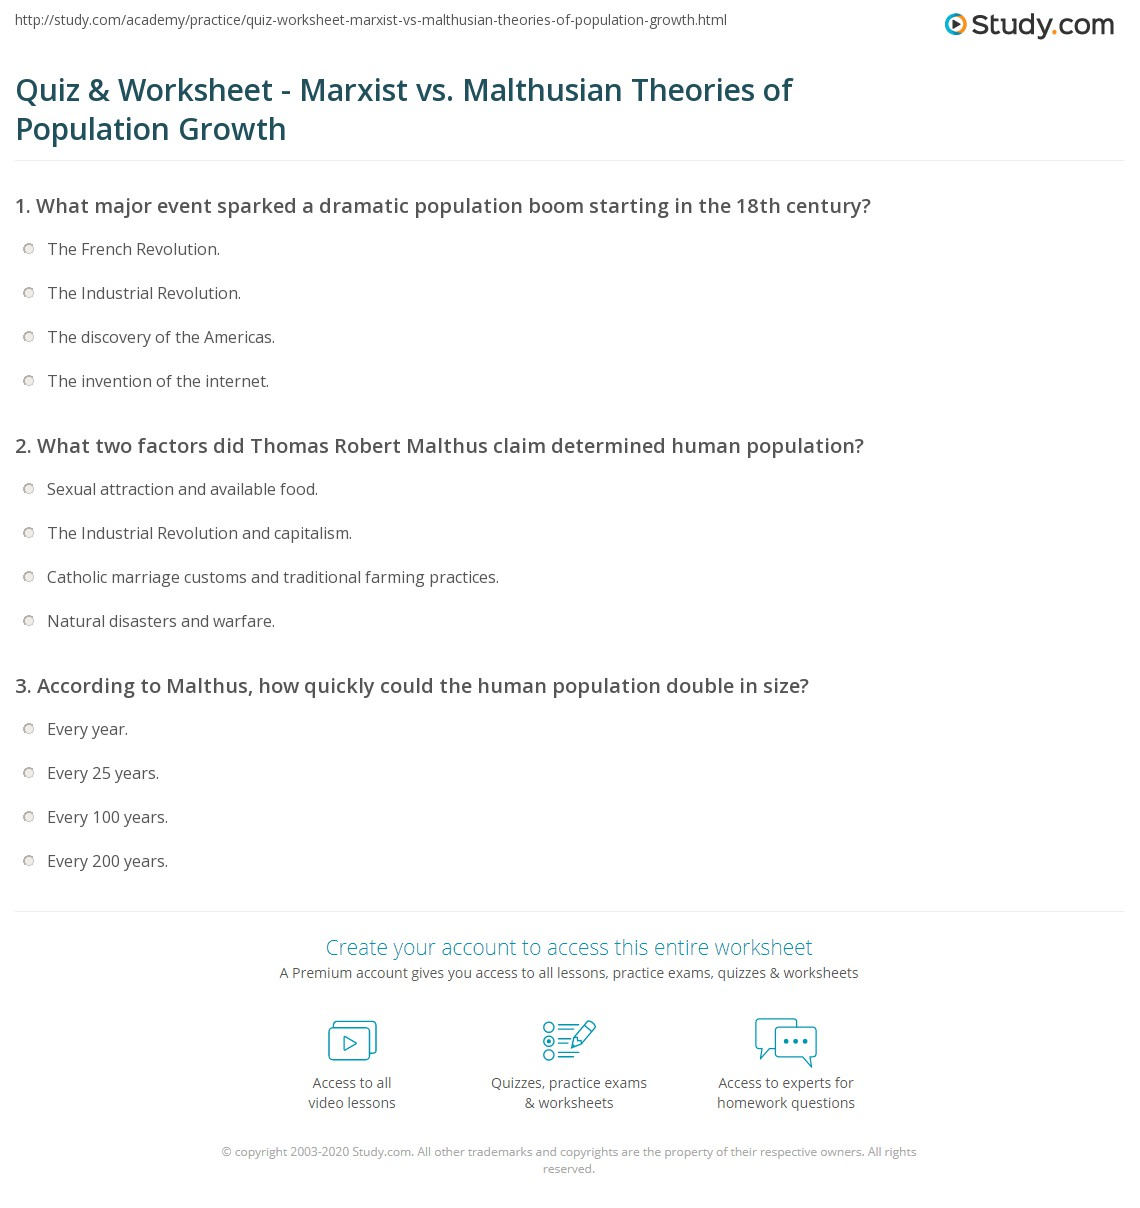 Quiz Worksheet Marxist Vs Malthusian Theories Of